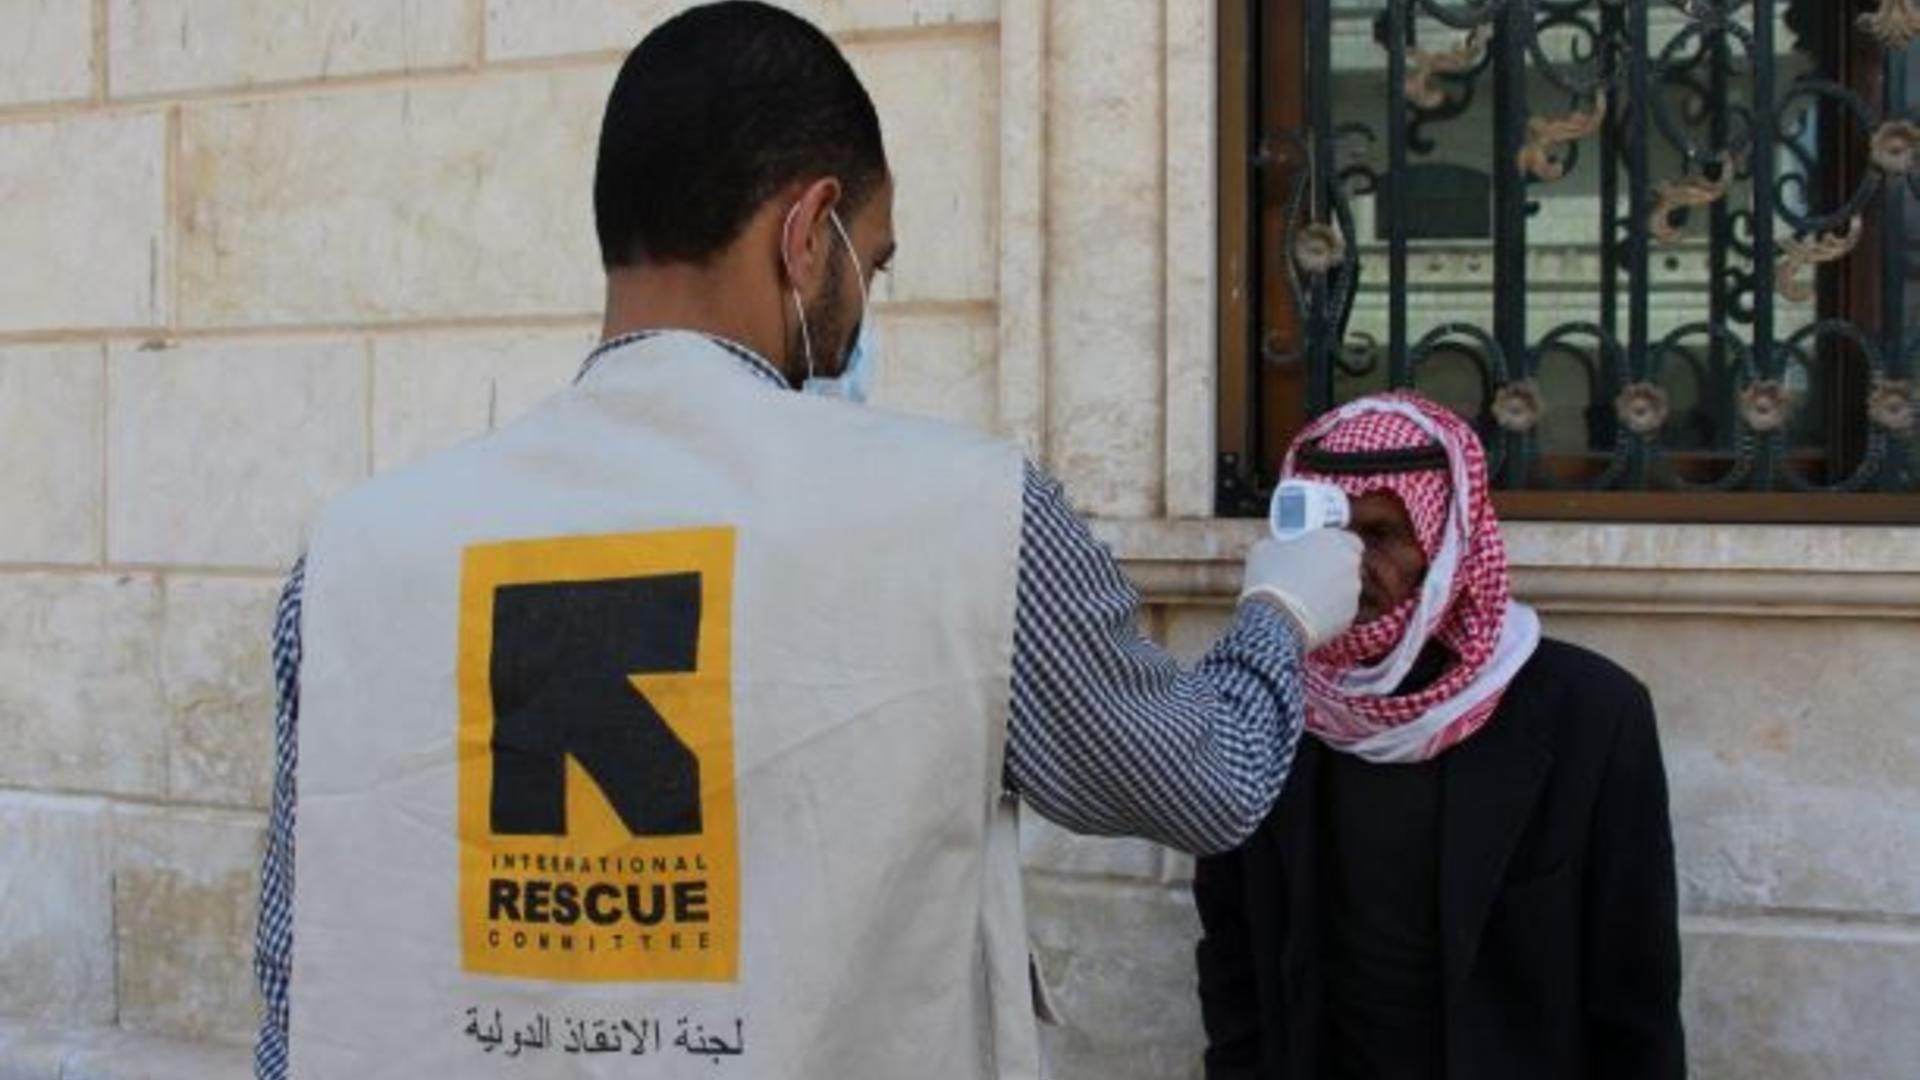 An IRC health worker scans a man in Syria for fever